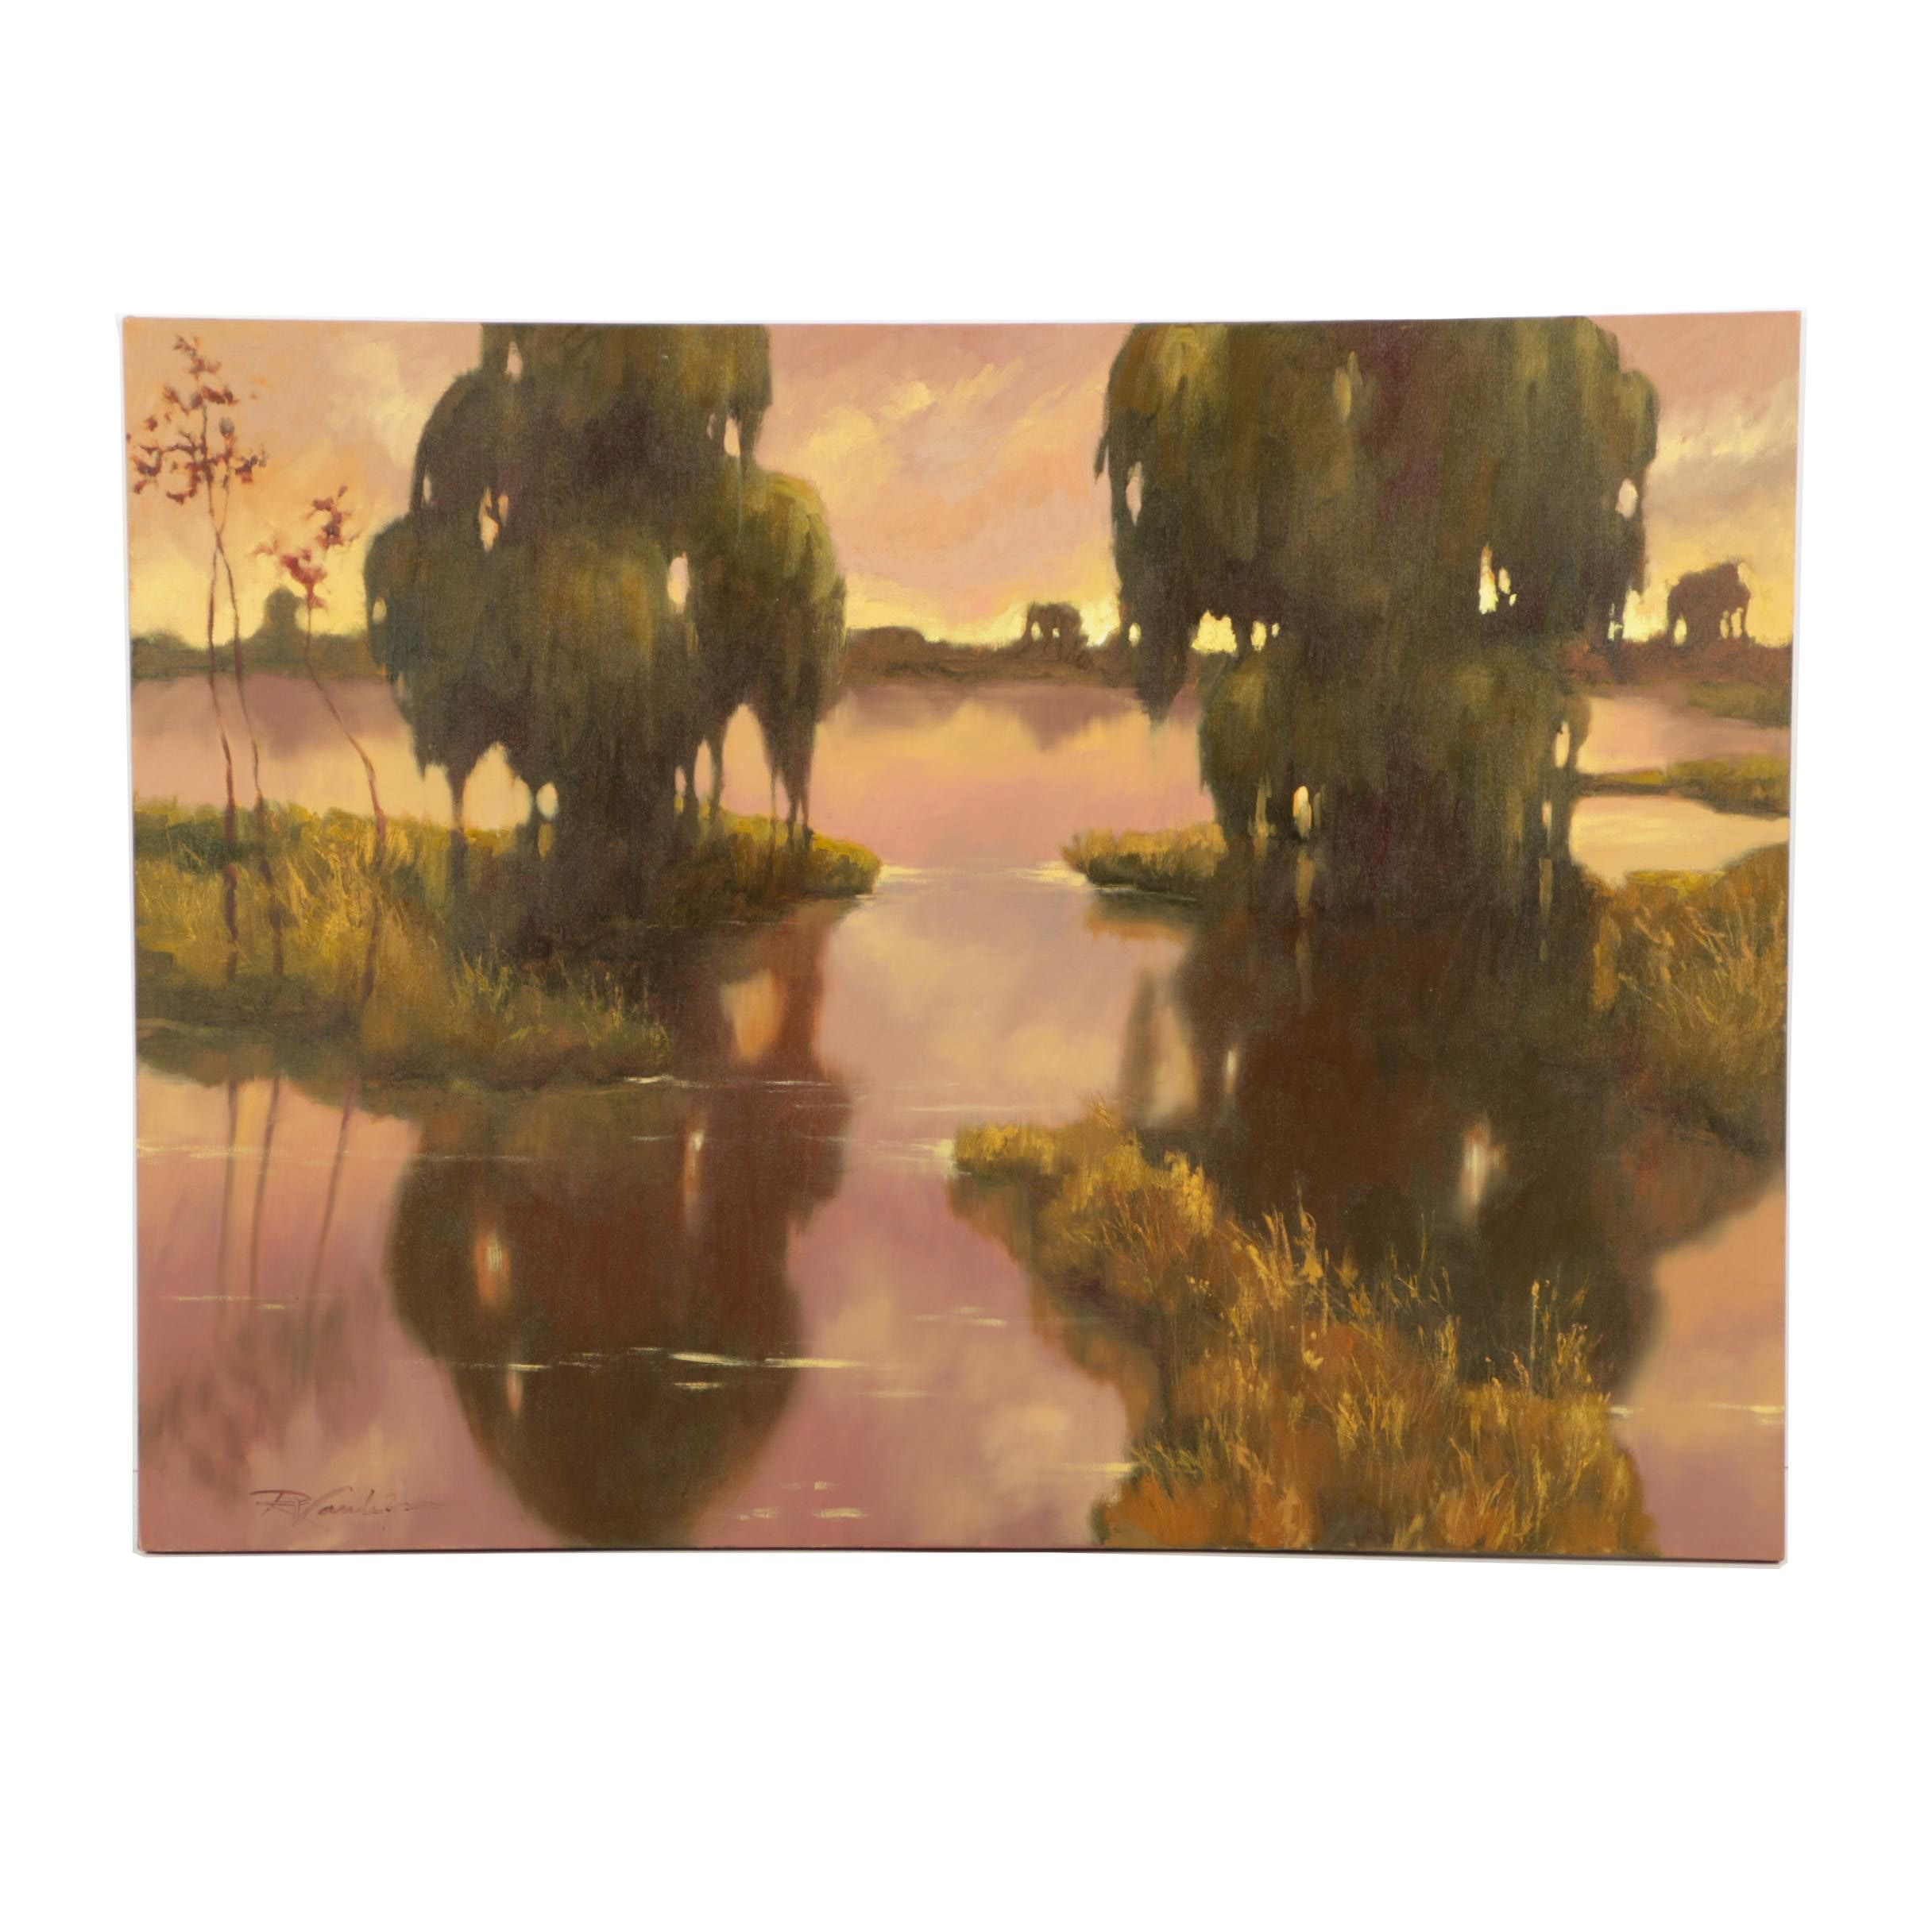 Signed Original Oil Painting on Canvas of a Sunset over a Pond